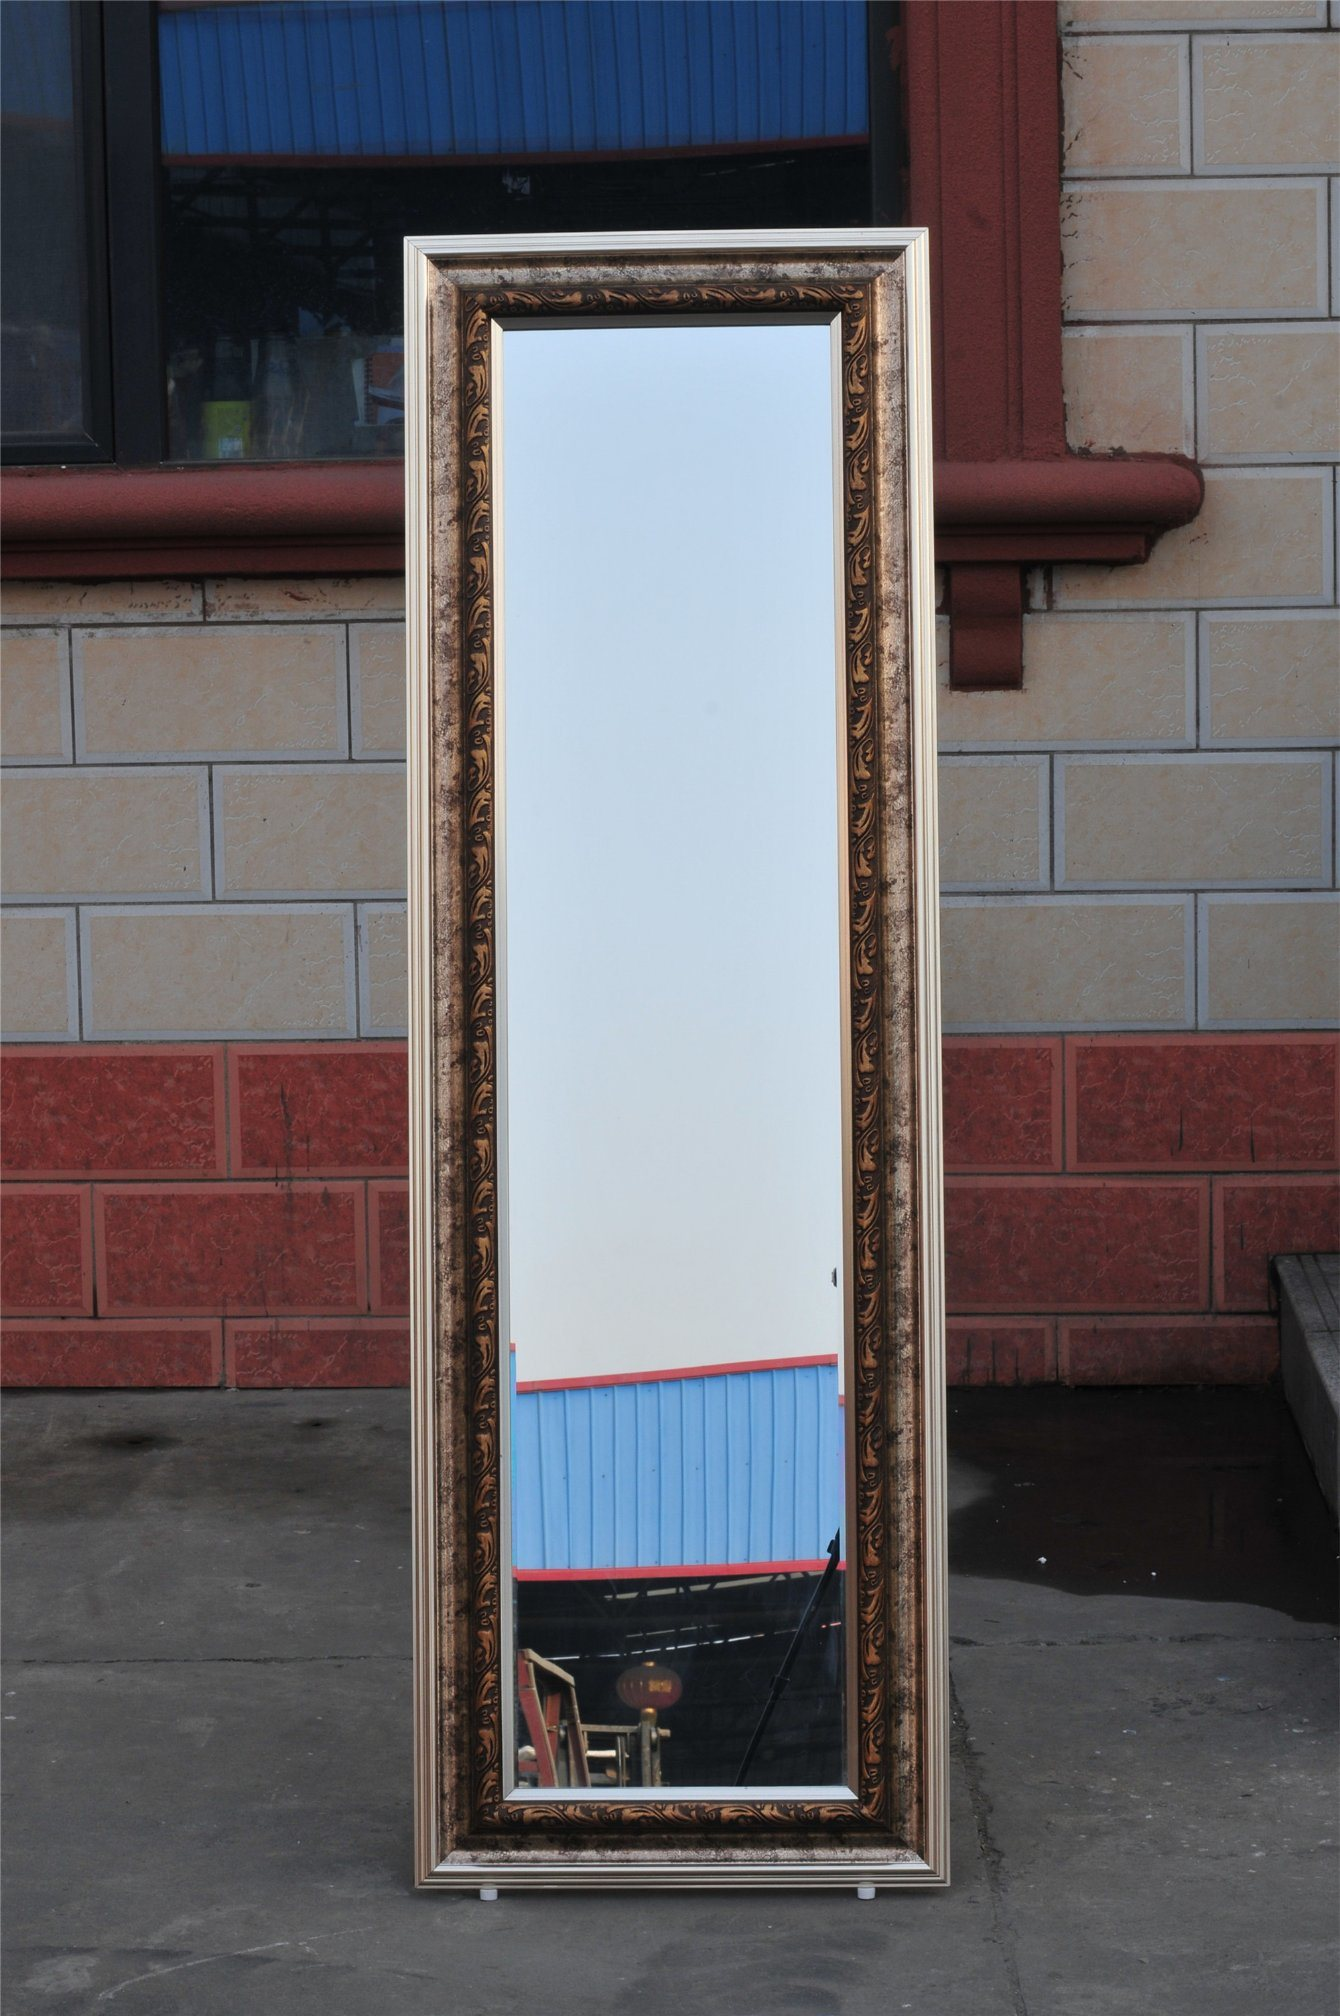 Cheap Bathroom Mirrors, Make up Mirror, Decorative Dressing Aluminium Mirror,